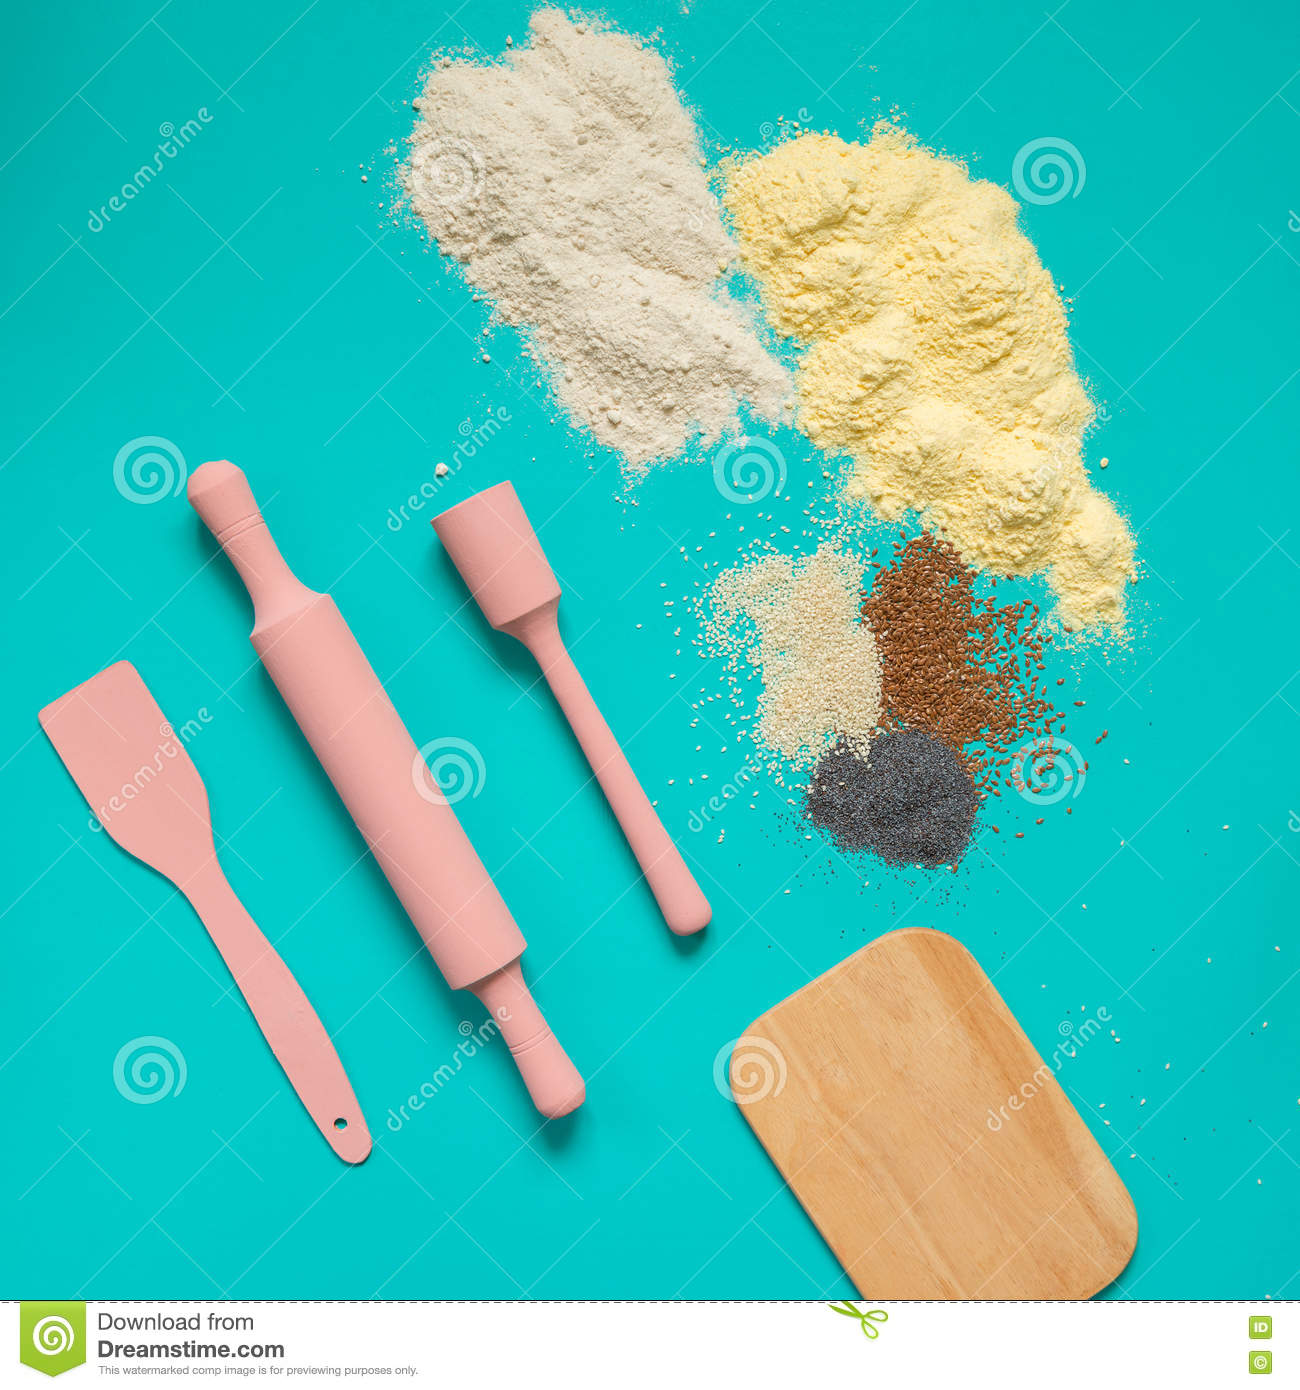 Baking Accessories Turquoise Stock Photo Image Of Accessory Interior 73624802